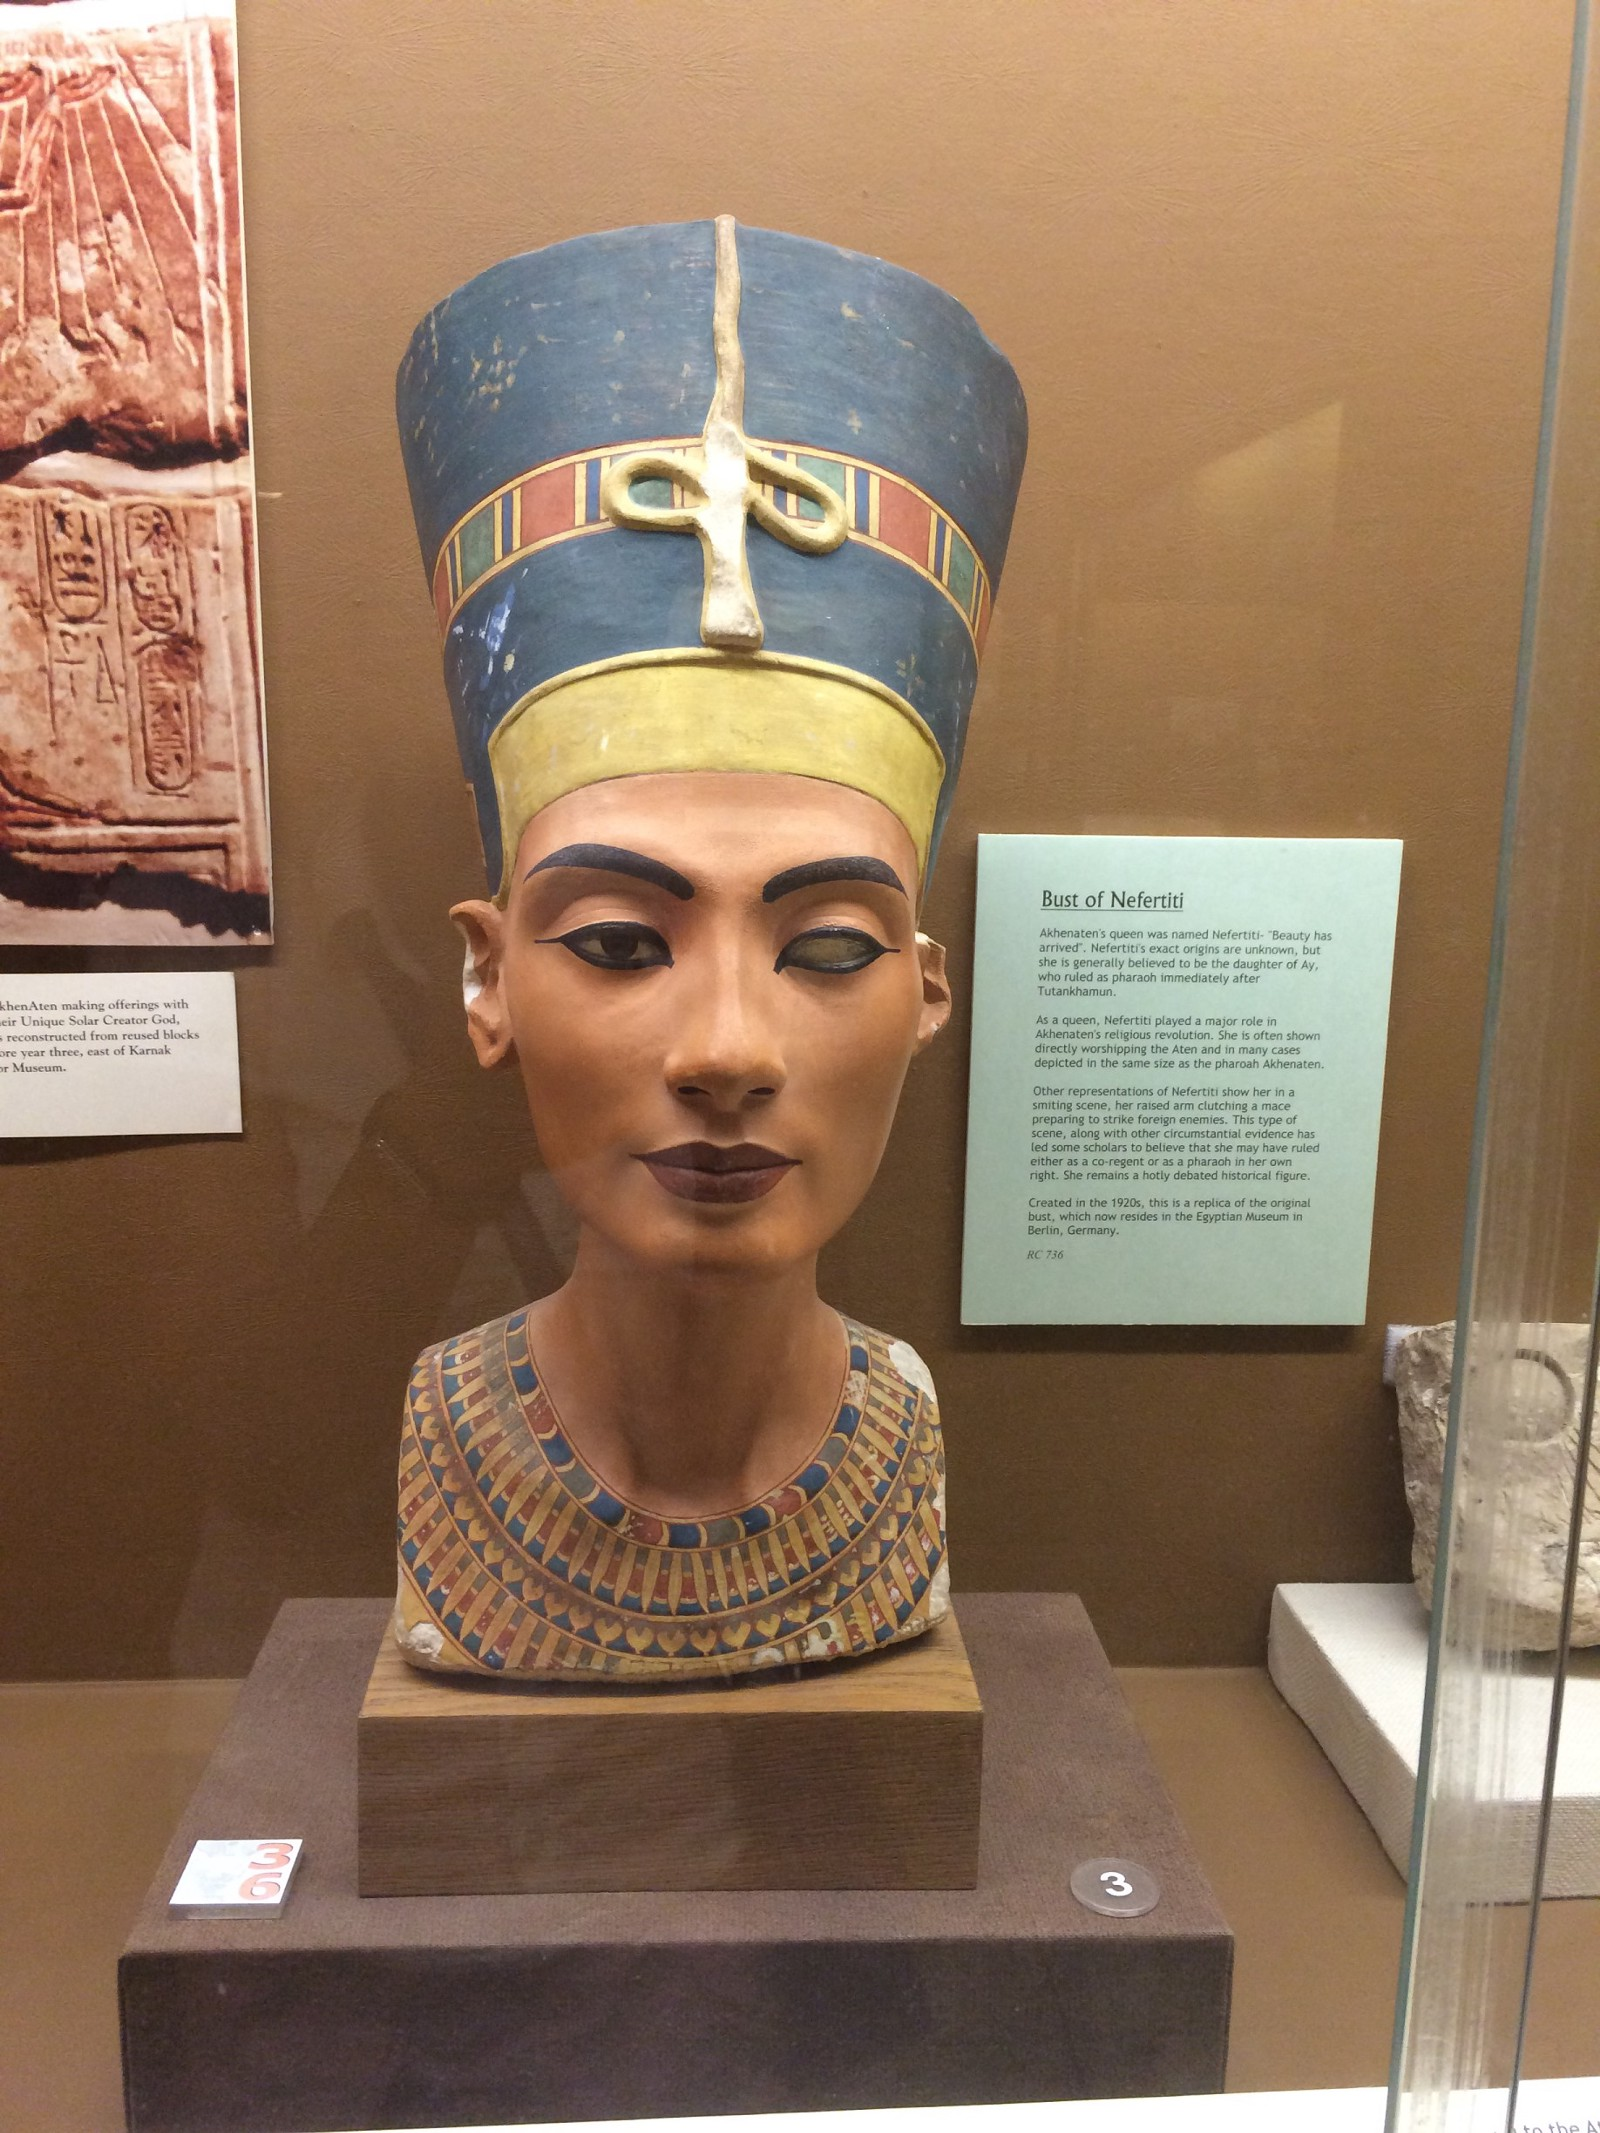 bust of nefertiti rosicrucian egyptian museum essay Synopsis nefertiti, whose name means a beautiful woman has come, was the queen of egypt and wife of pharaoh akhenaten during the 14th century bc.